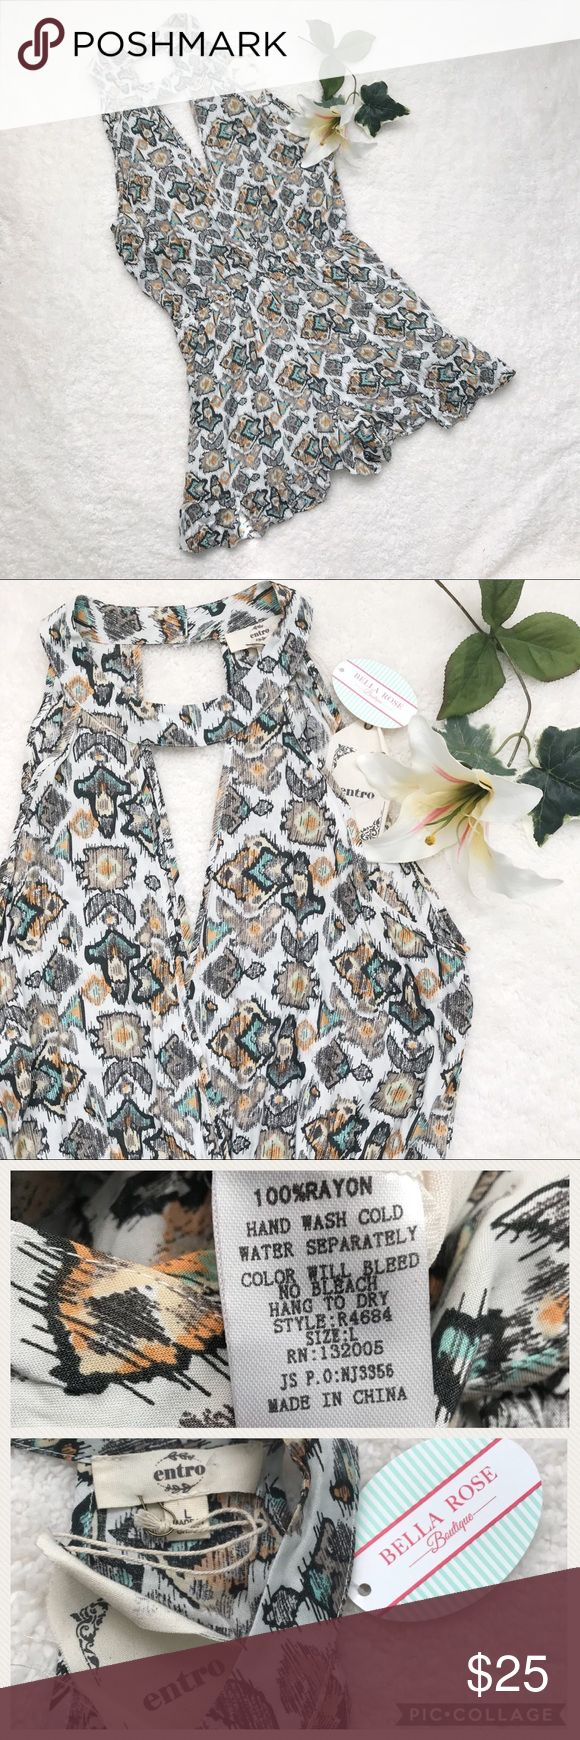 NWT ENTRO Romper Boutique Shorts Spring Festival This listing is for an adorable romper by entro, a brand sold at many boutiques. This one is from a local boutique called Bella Rose.   Romper has so many cute details. Double button closure behind neck. Light and flowy fabric. Asymmetrical short length. Elasticated waist.   Perfect for spring festivals and summertime!   Size large. No holes or stains.   Smoke free home. Please see pictures for measurements. Feel free to ask any questions or…